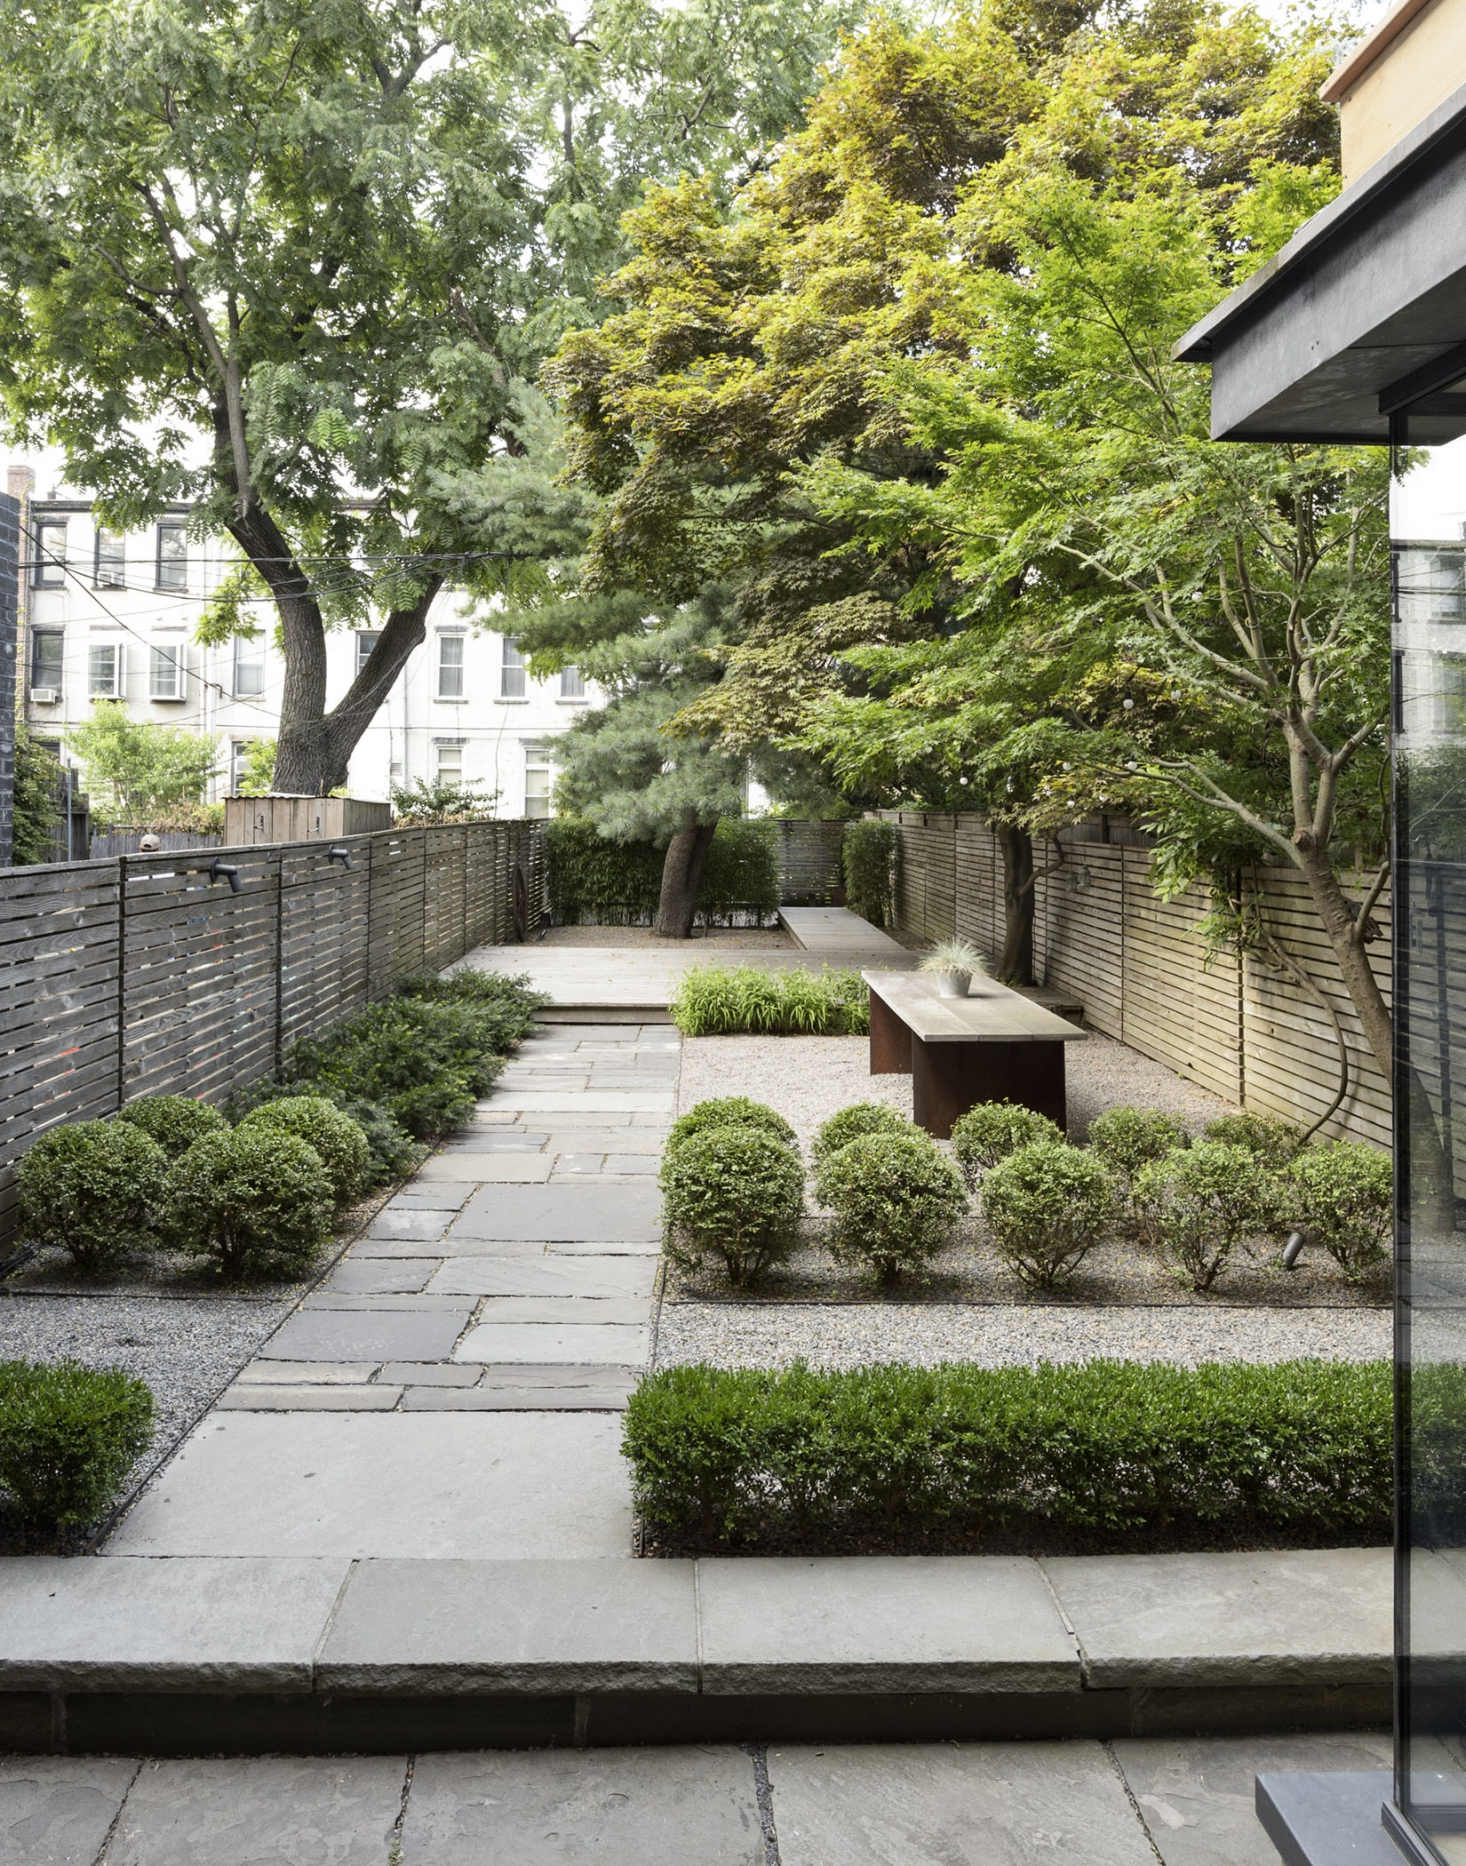 21.SIMPHOME.COM A privacy landscaping how to use plants in a city garden gardenista